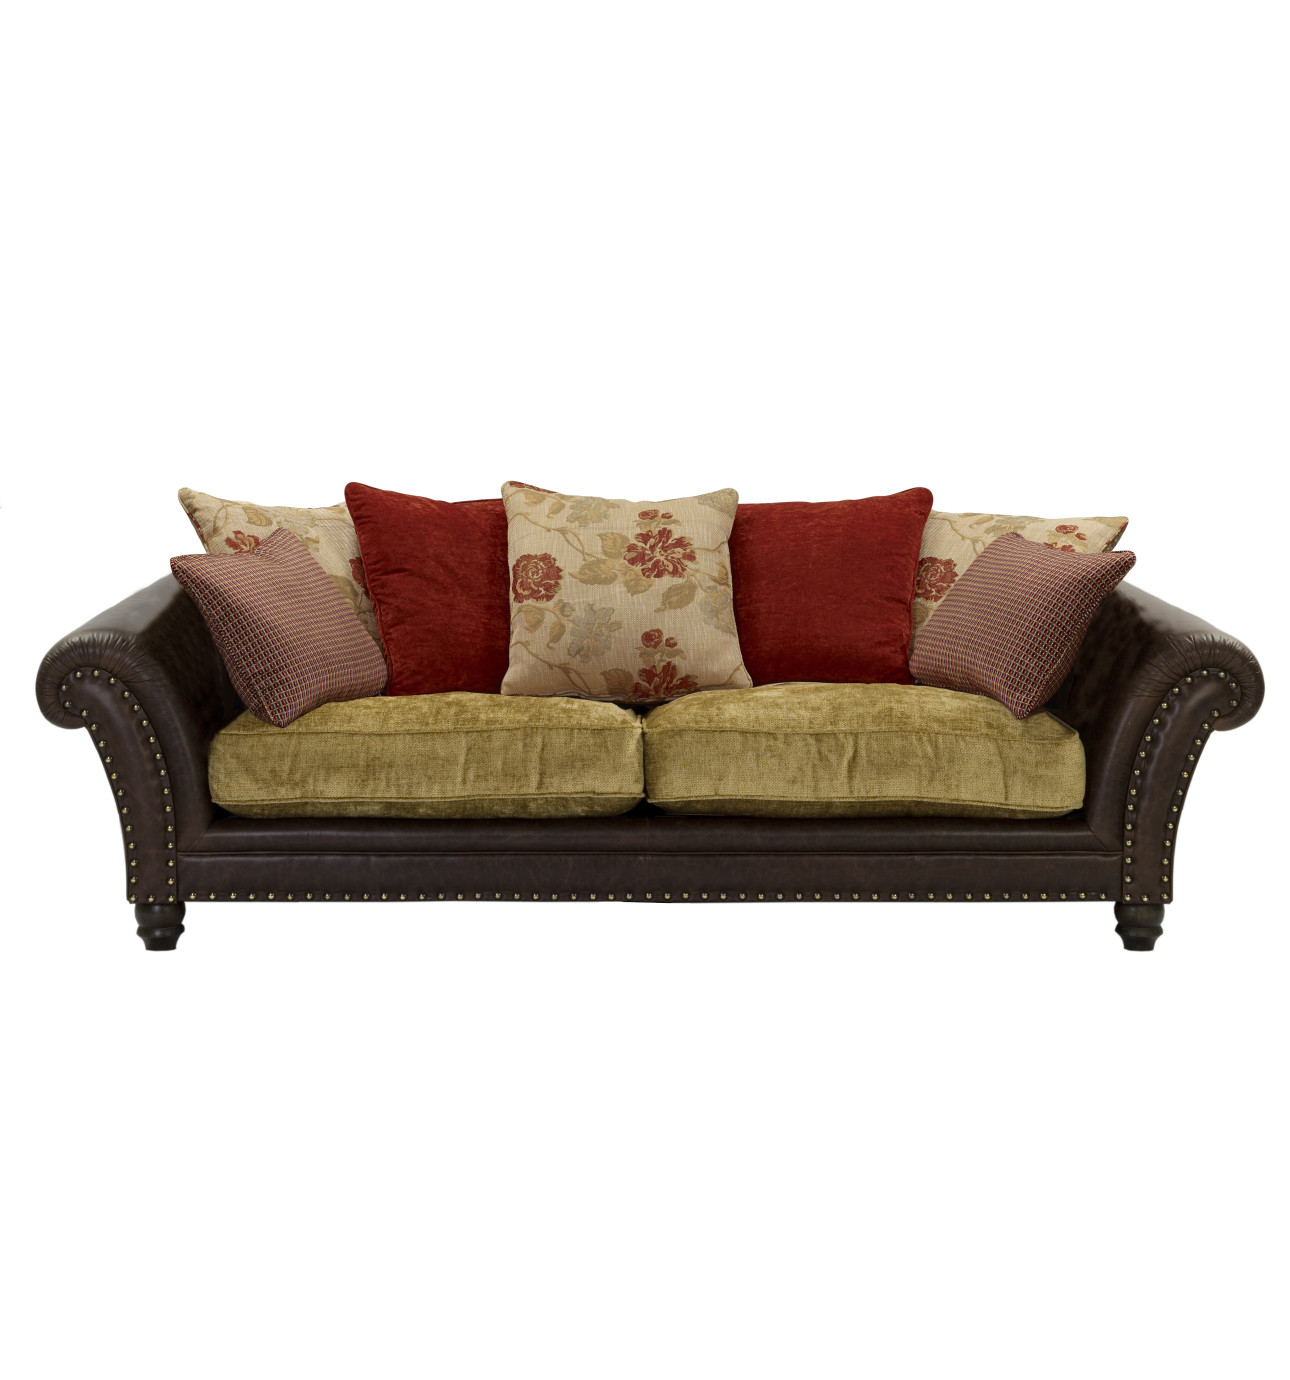 sofas australia online good sofa beds australia online 95 in john lewis bed thesofa. Black Bedroom Furniture Sets. Home Design Ideas